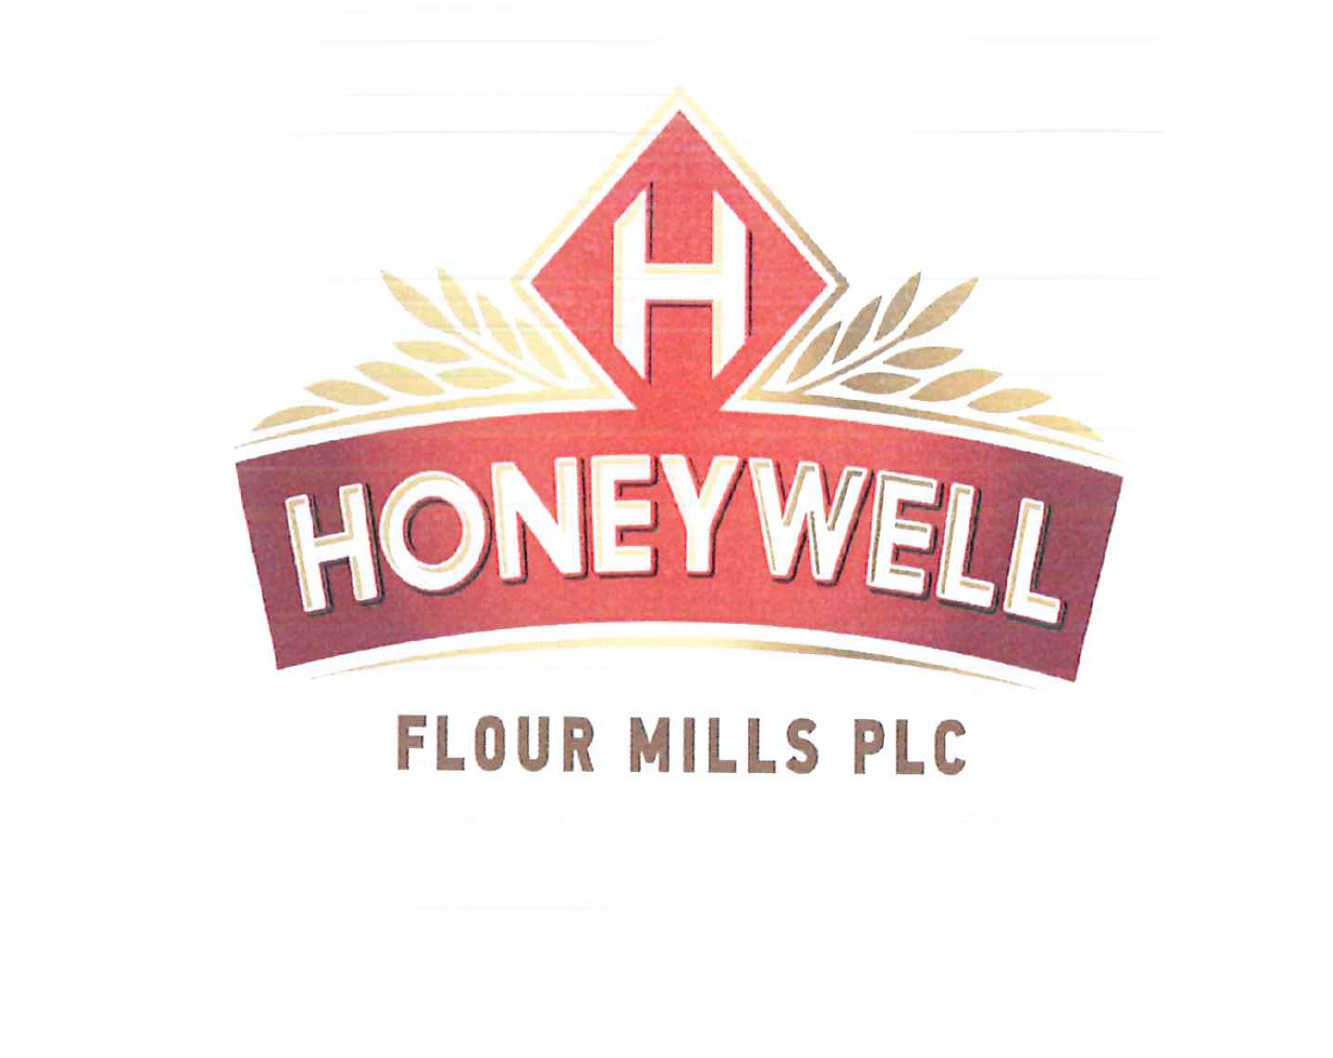 HONEYWELL FLOUR Opens 2018 Financial Year With Strong Q1 Earnings, May Sustain Price, Payout